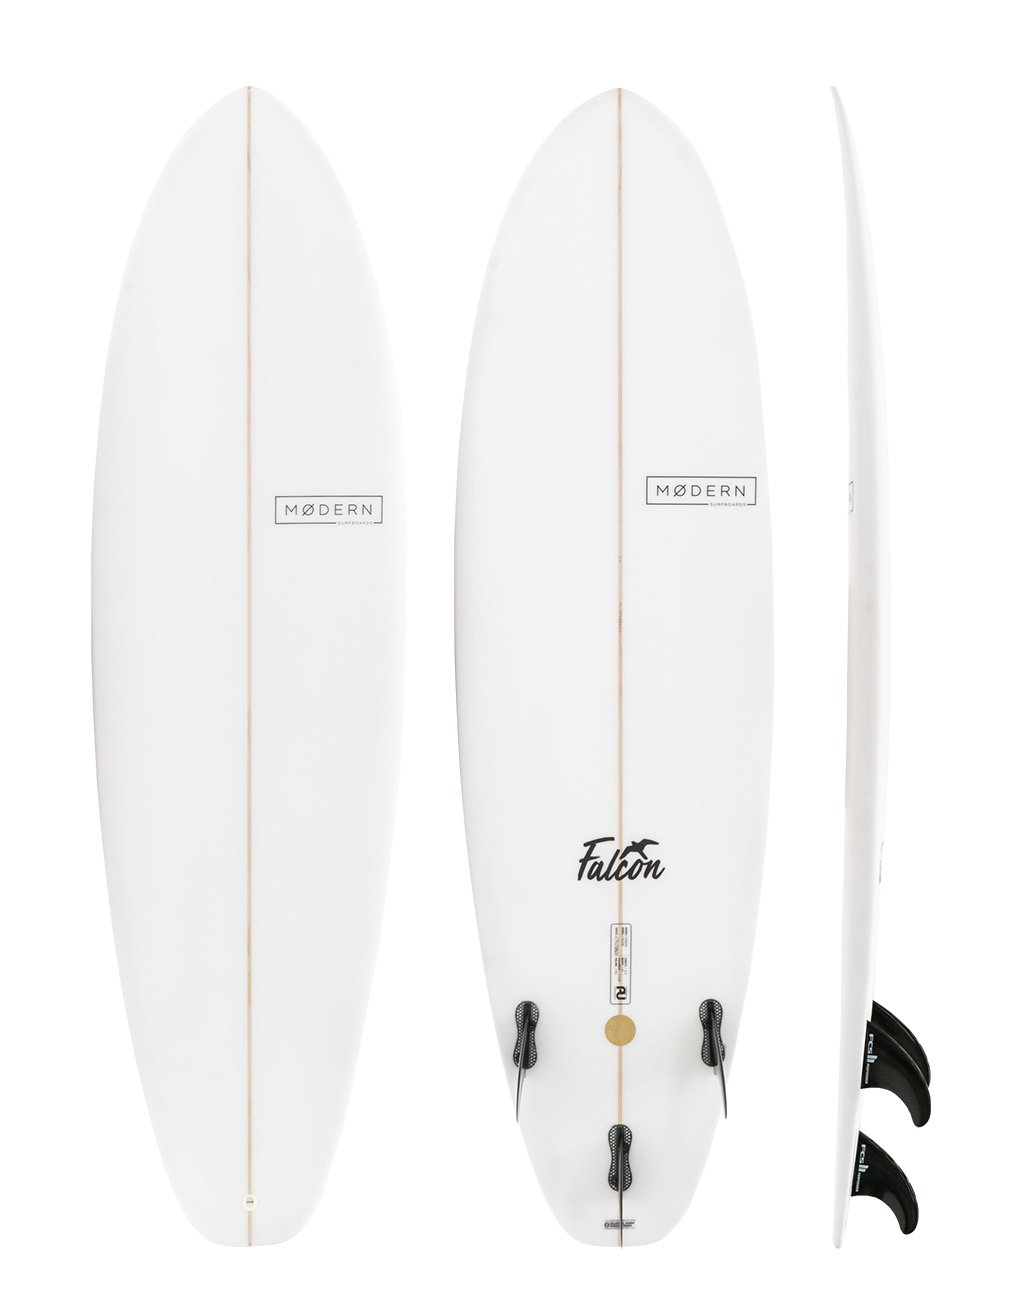 Mosern Surfboards Falcon